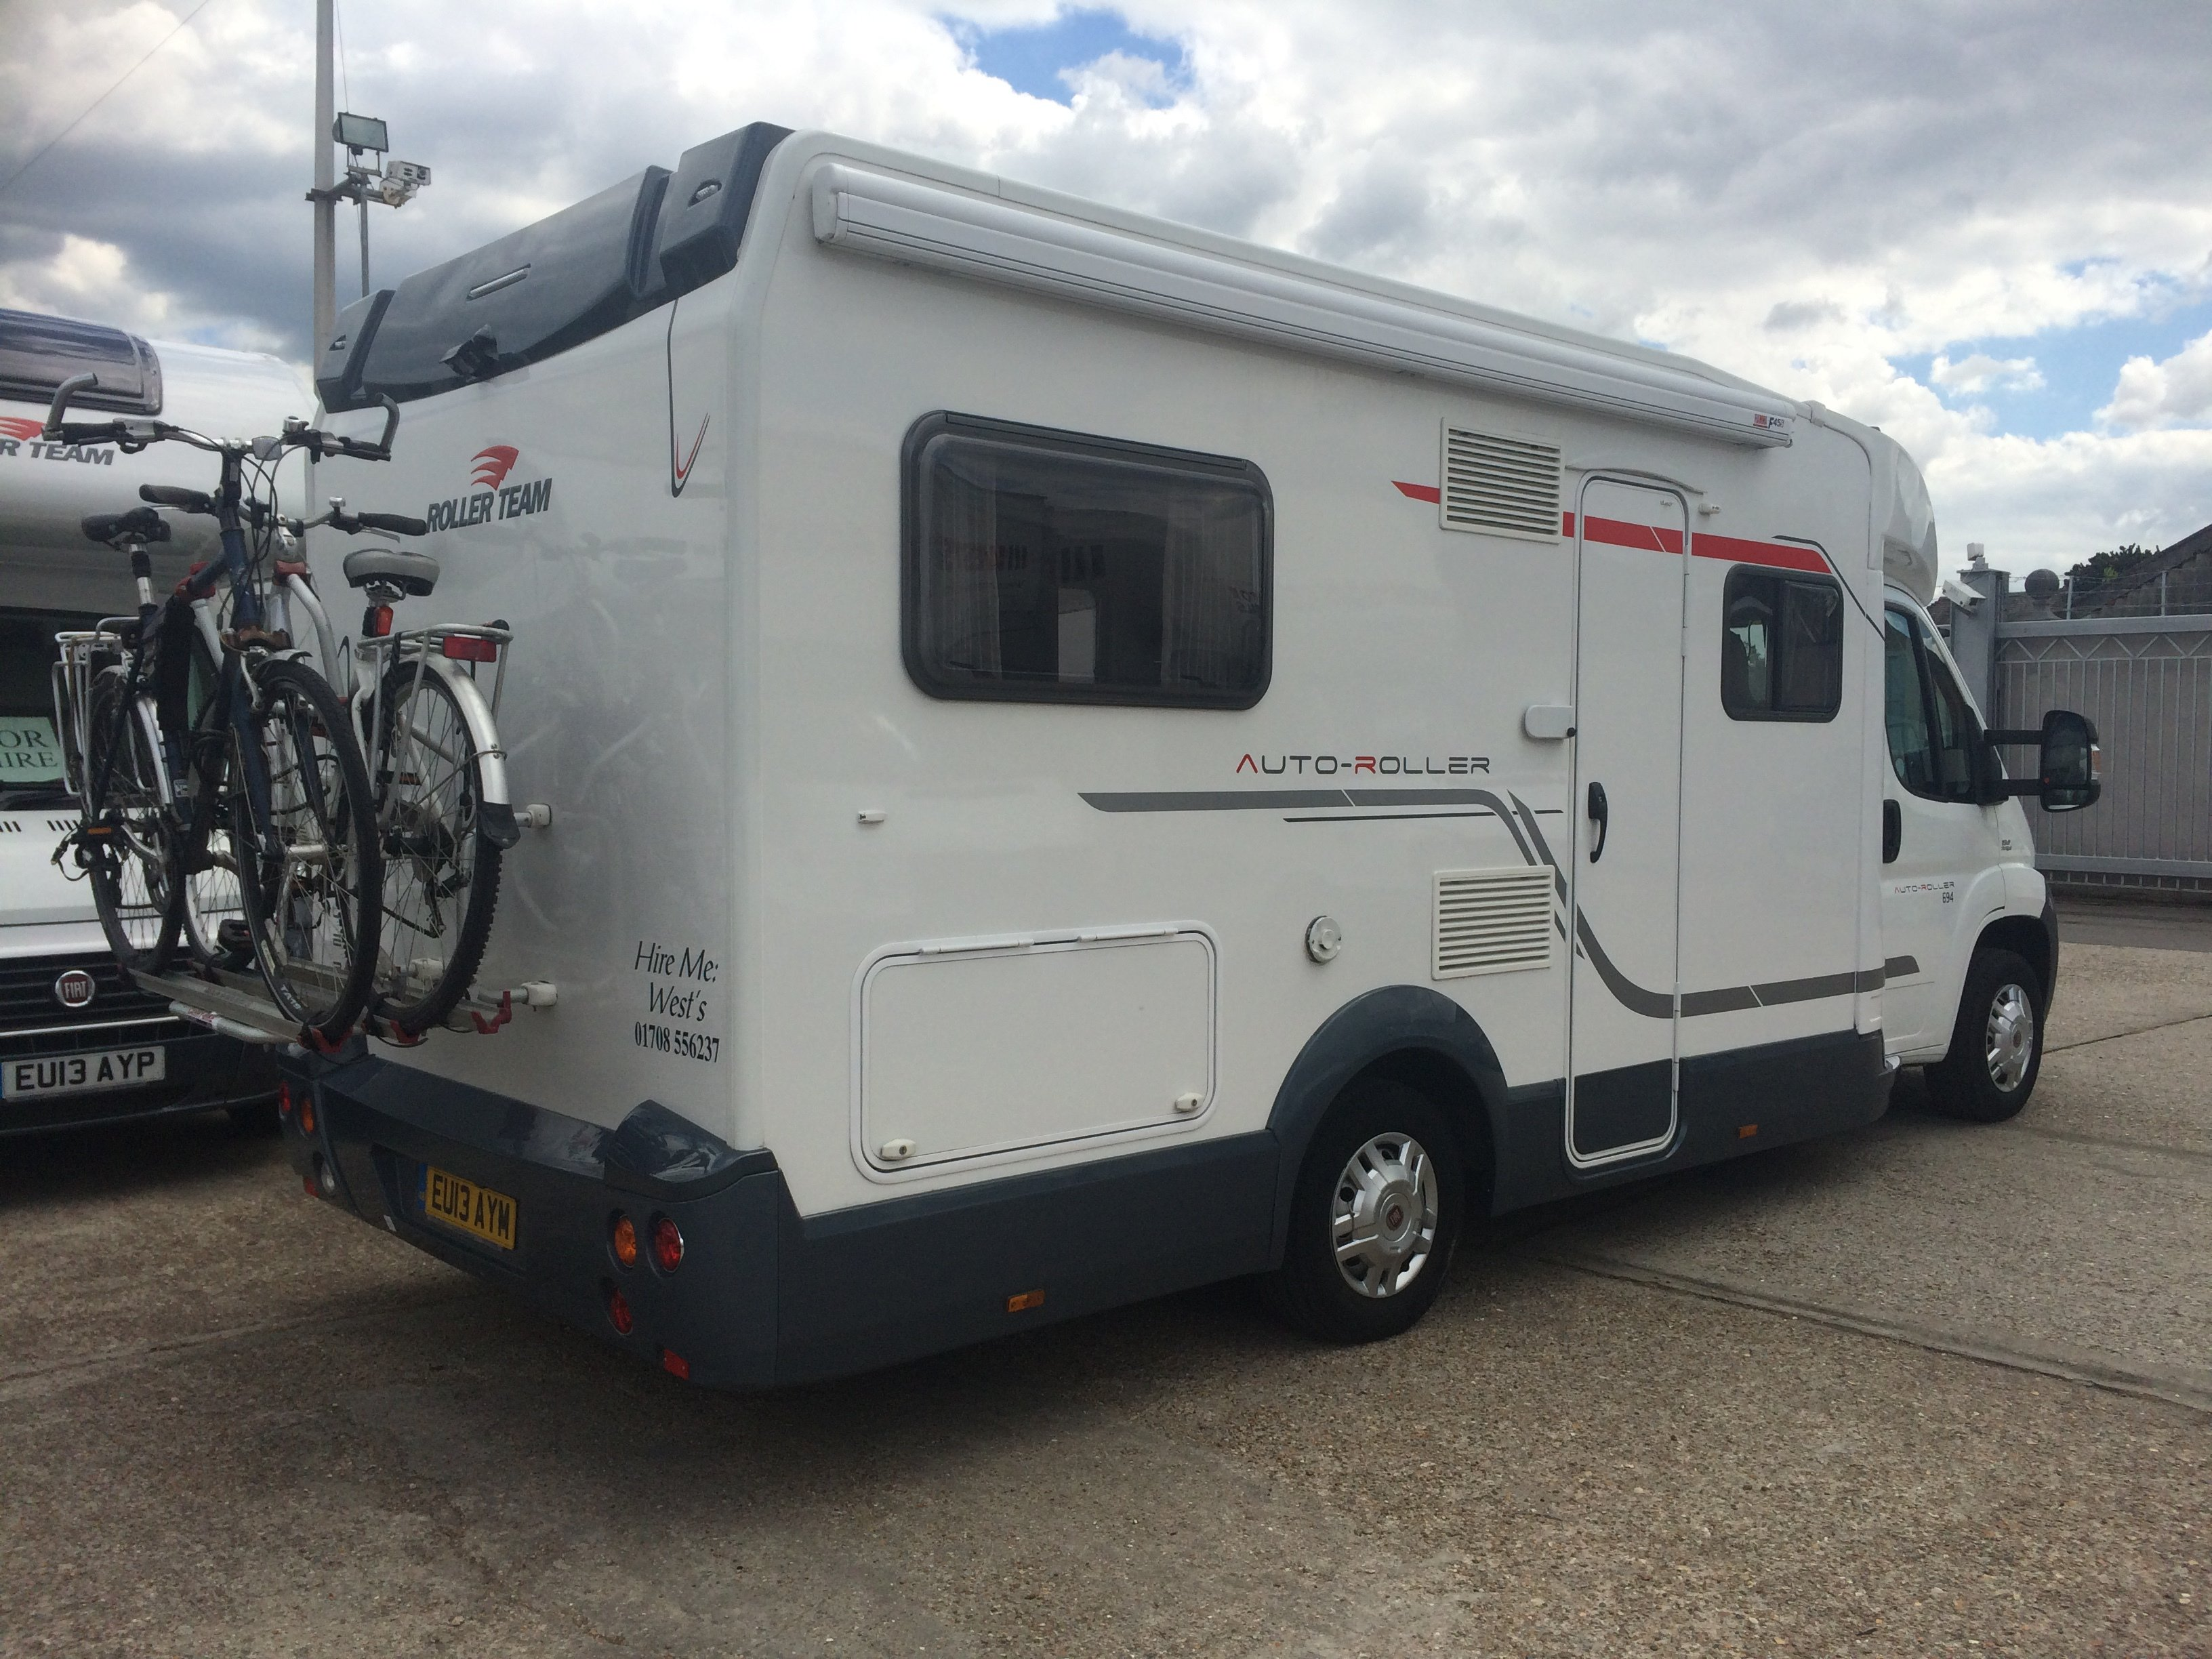 motorhome hire with bike rack, bikes, kitchen, toilet